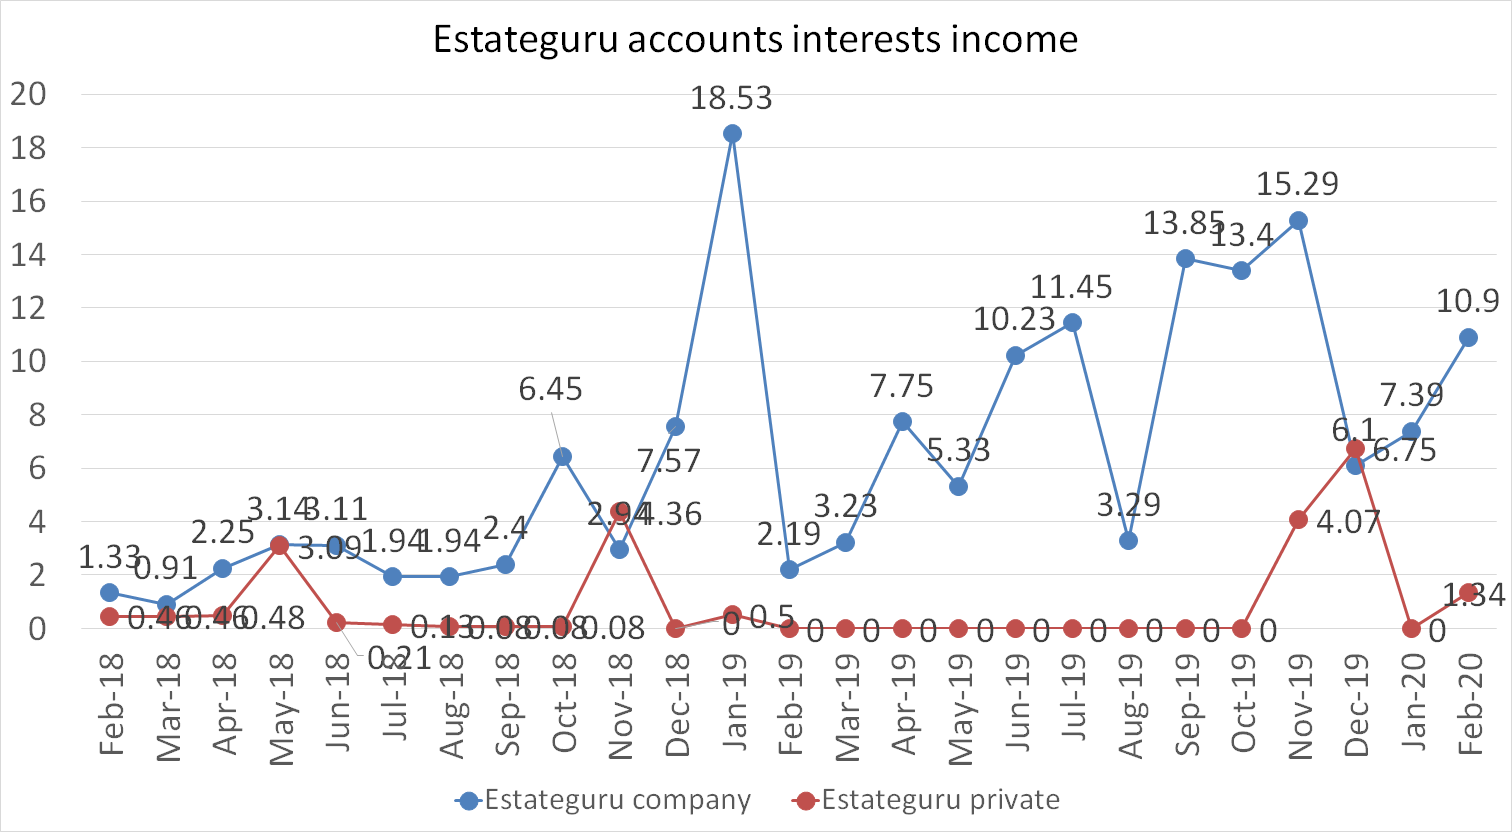 Estateguru accoutns interests income in february 2020